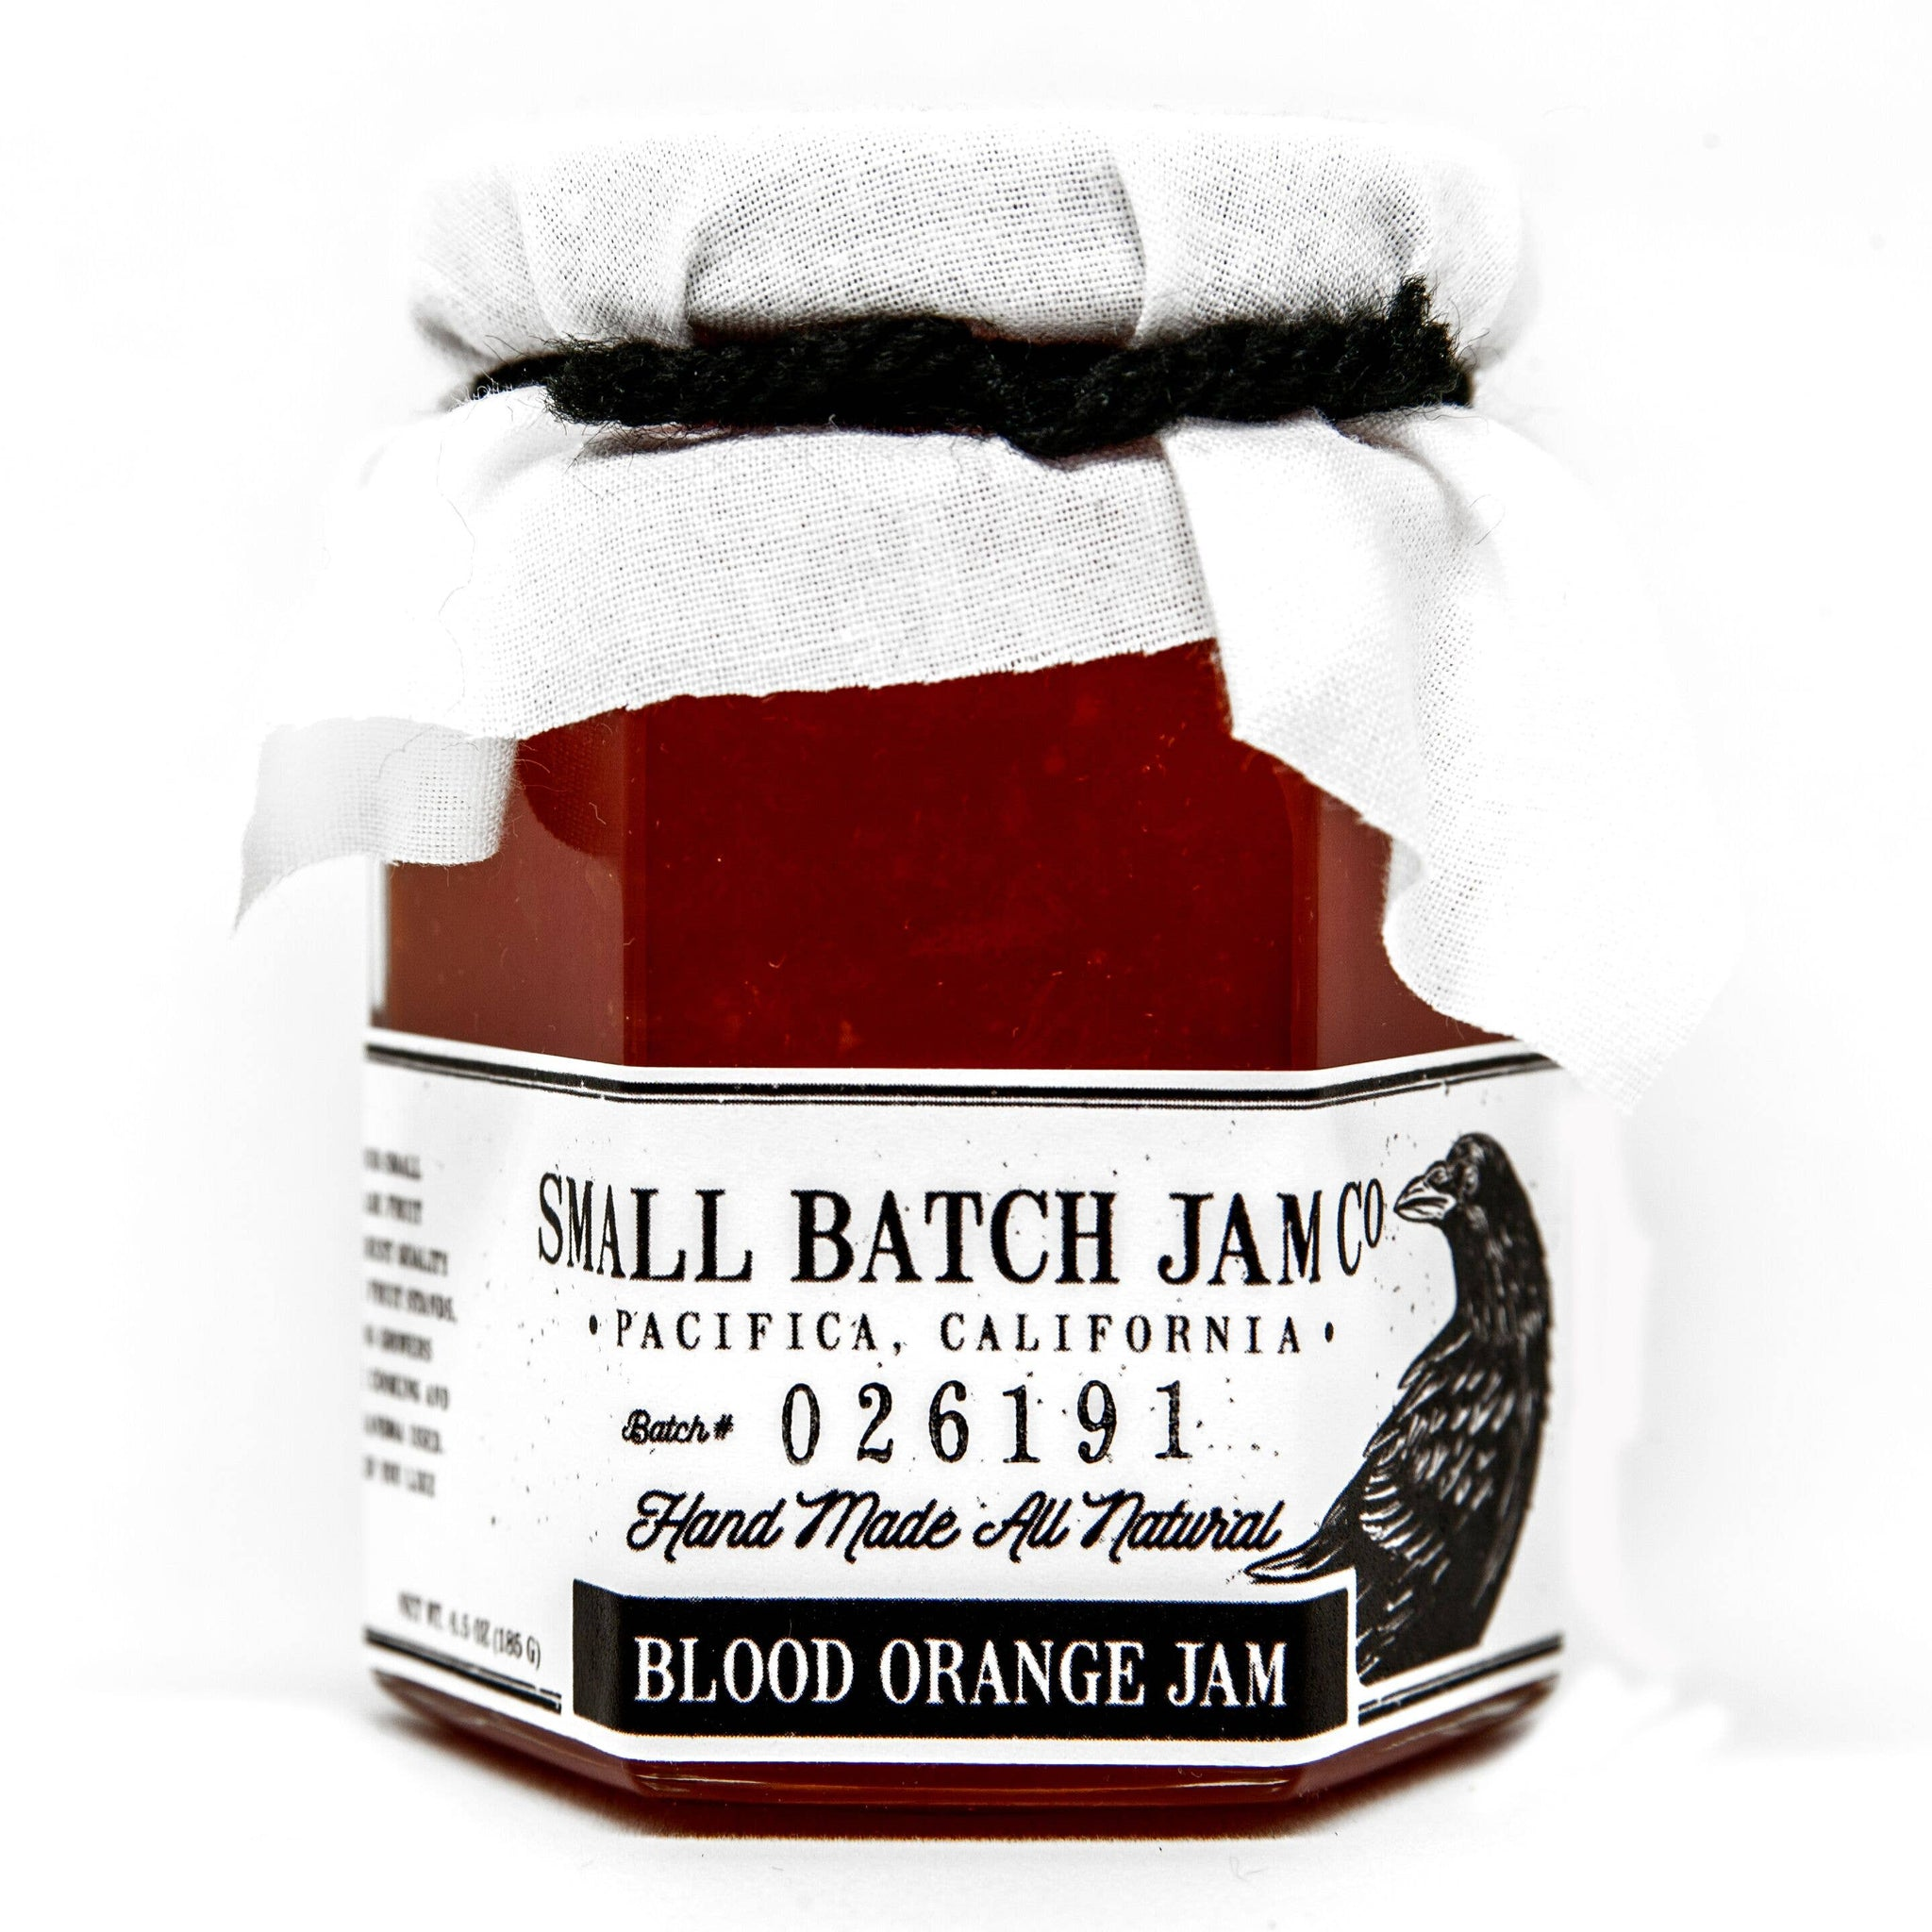 Small Batch Jam Co. - Blood Orange Jam